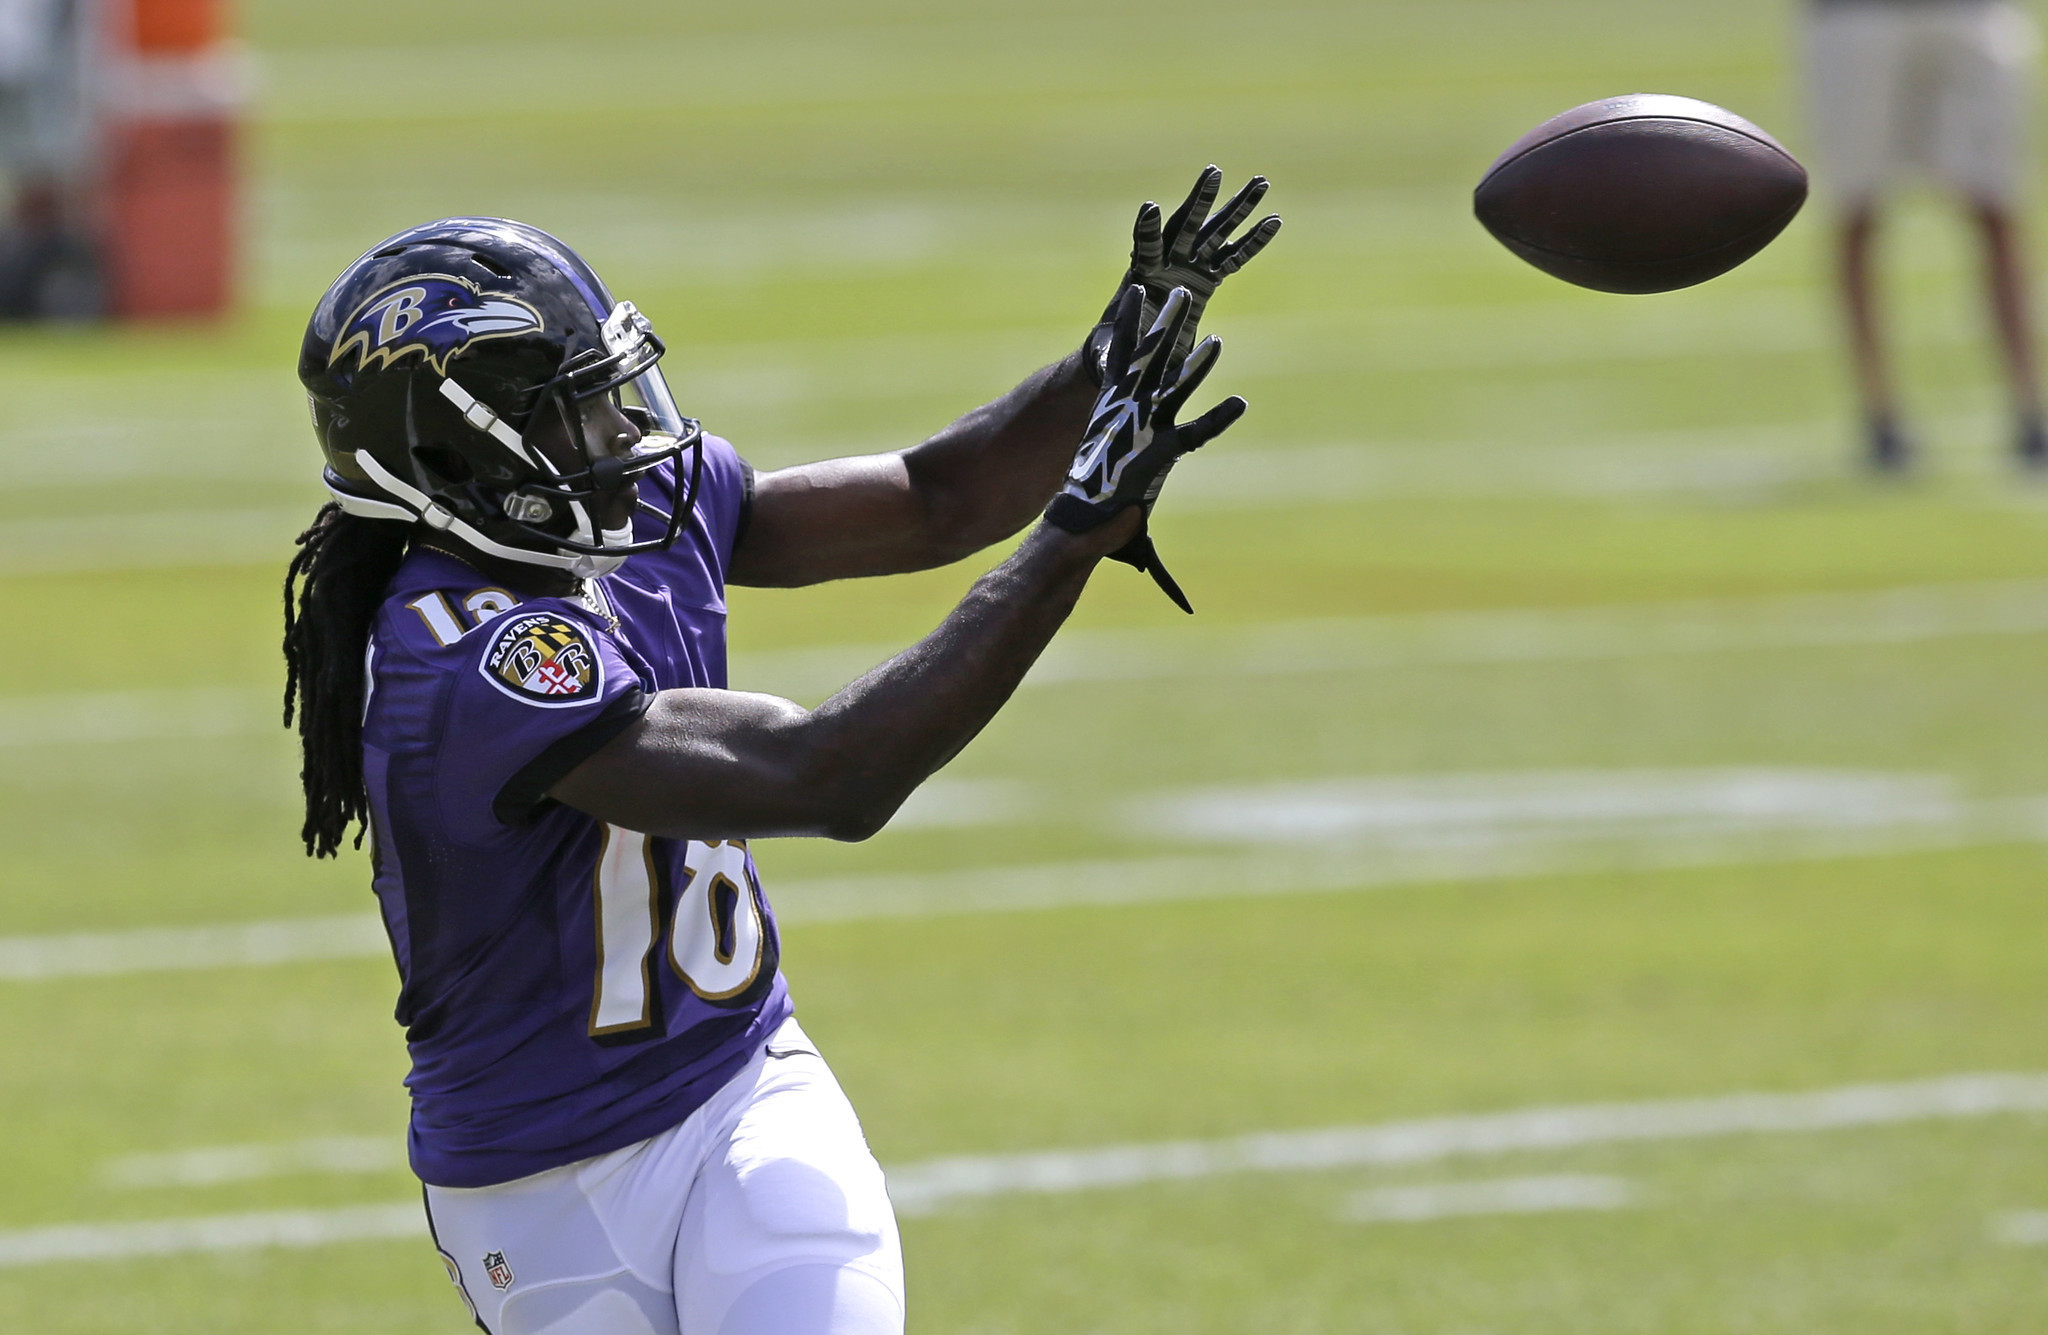 Bal Ravens Rookie Wide Receiver Breshad Perriman Makes No Excuses For Dropped Passes Vows To Improve 20150617